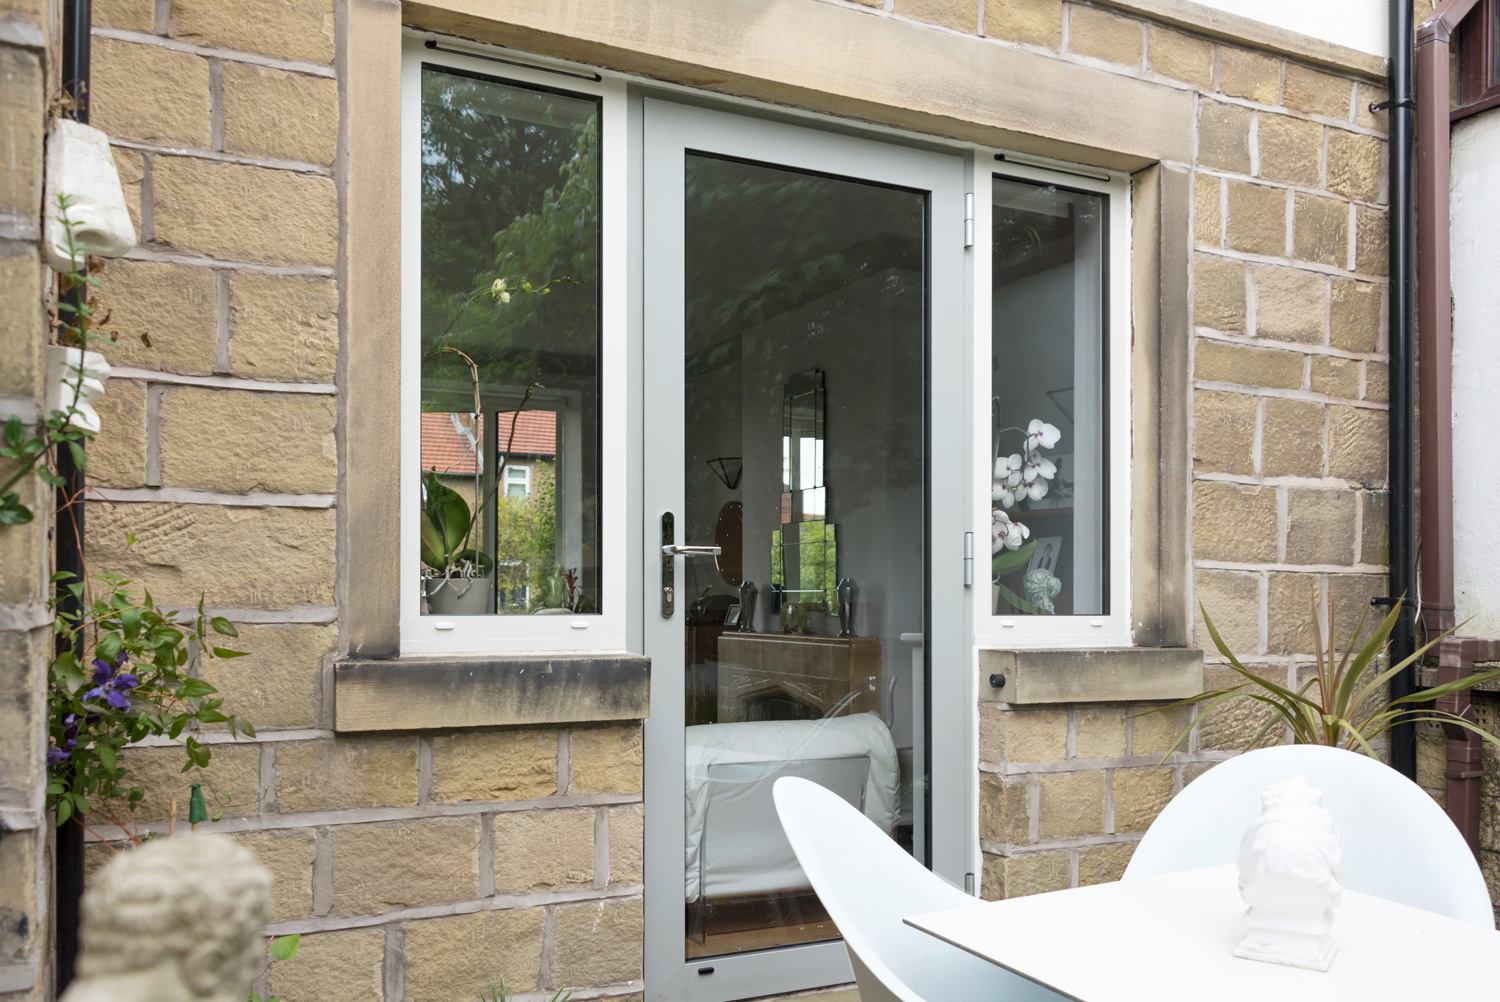 Aluminium Windows Aluminium Windows & MIDAS ALUMINIUM | bi-folding aluminium windows and doors ...